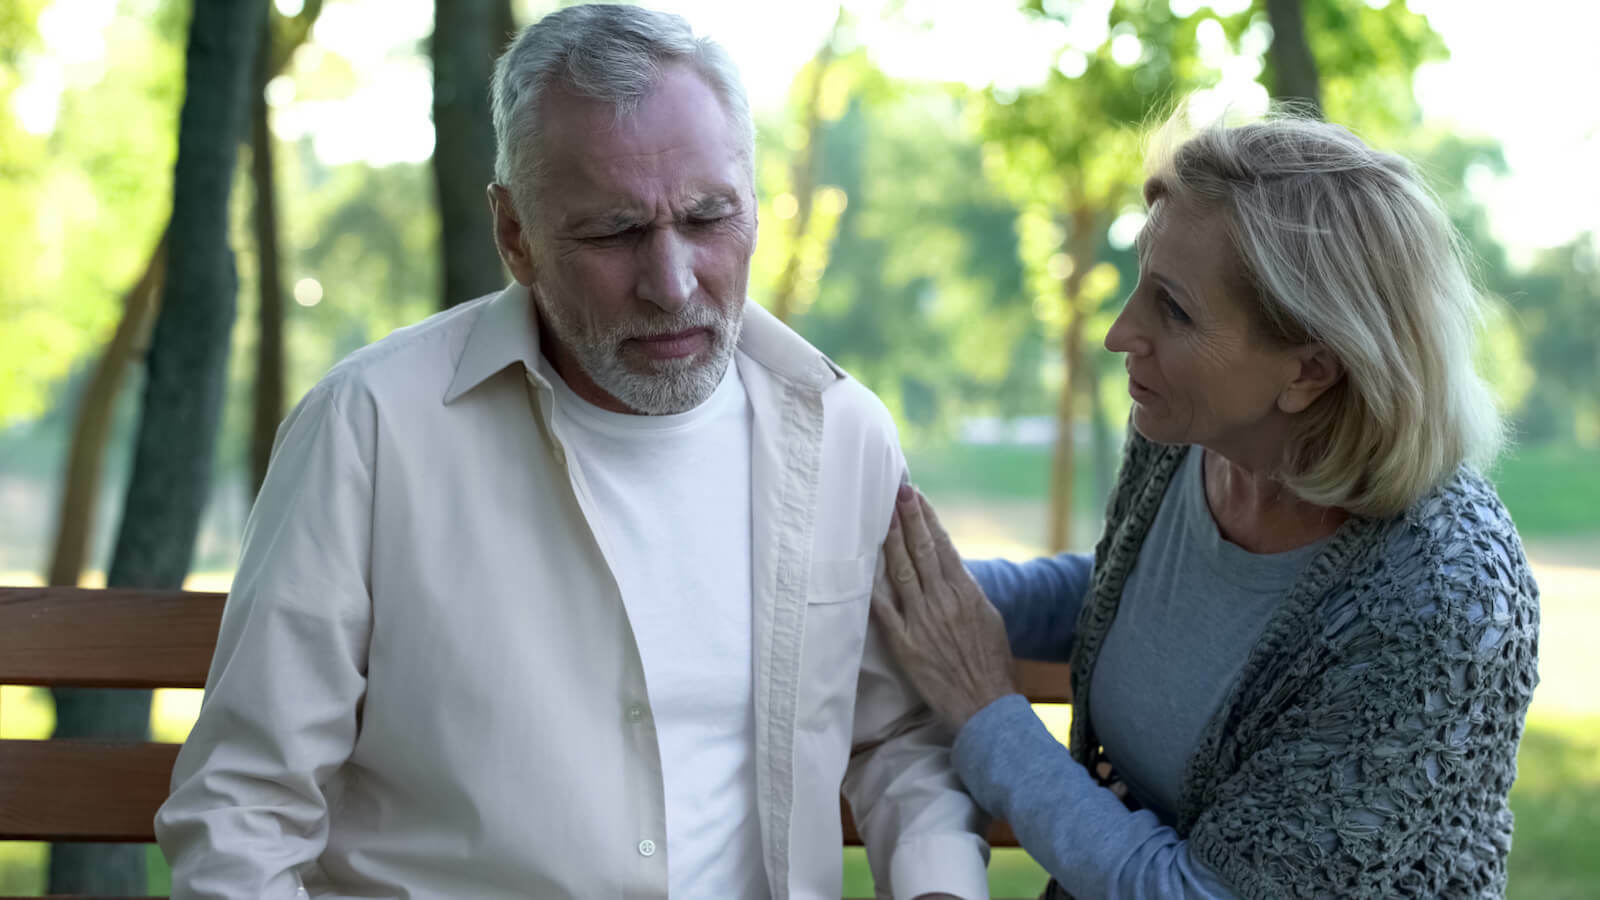 Nausea and sweating: unwell elderly man being comforted by an elderly woman